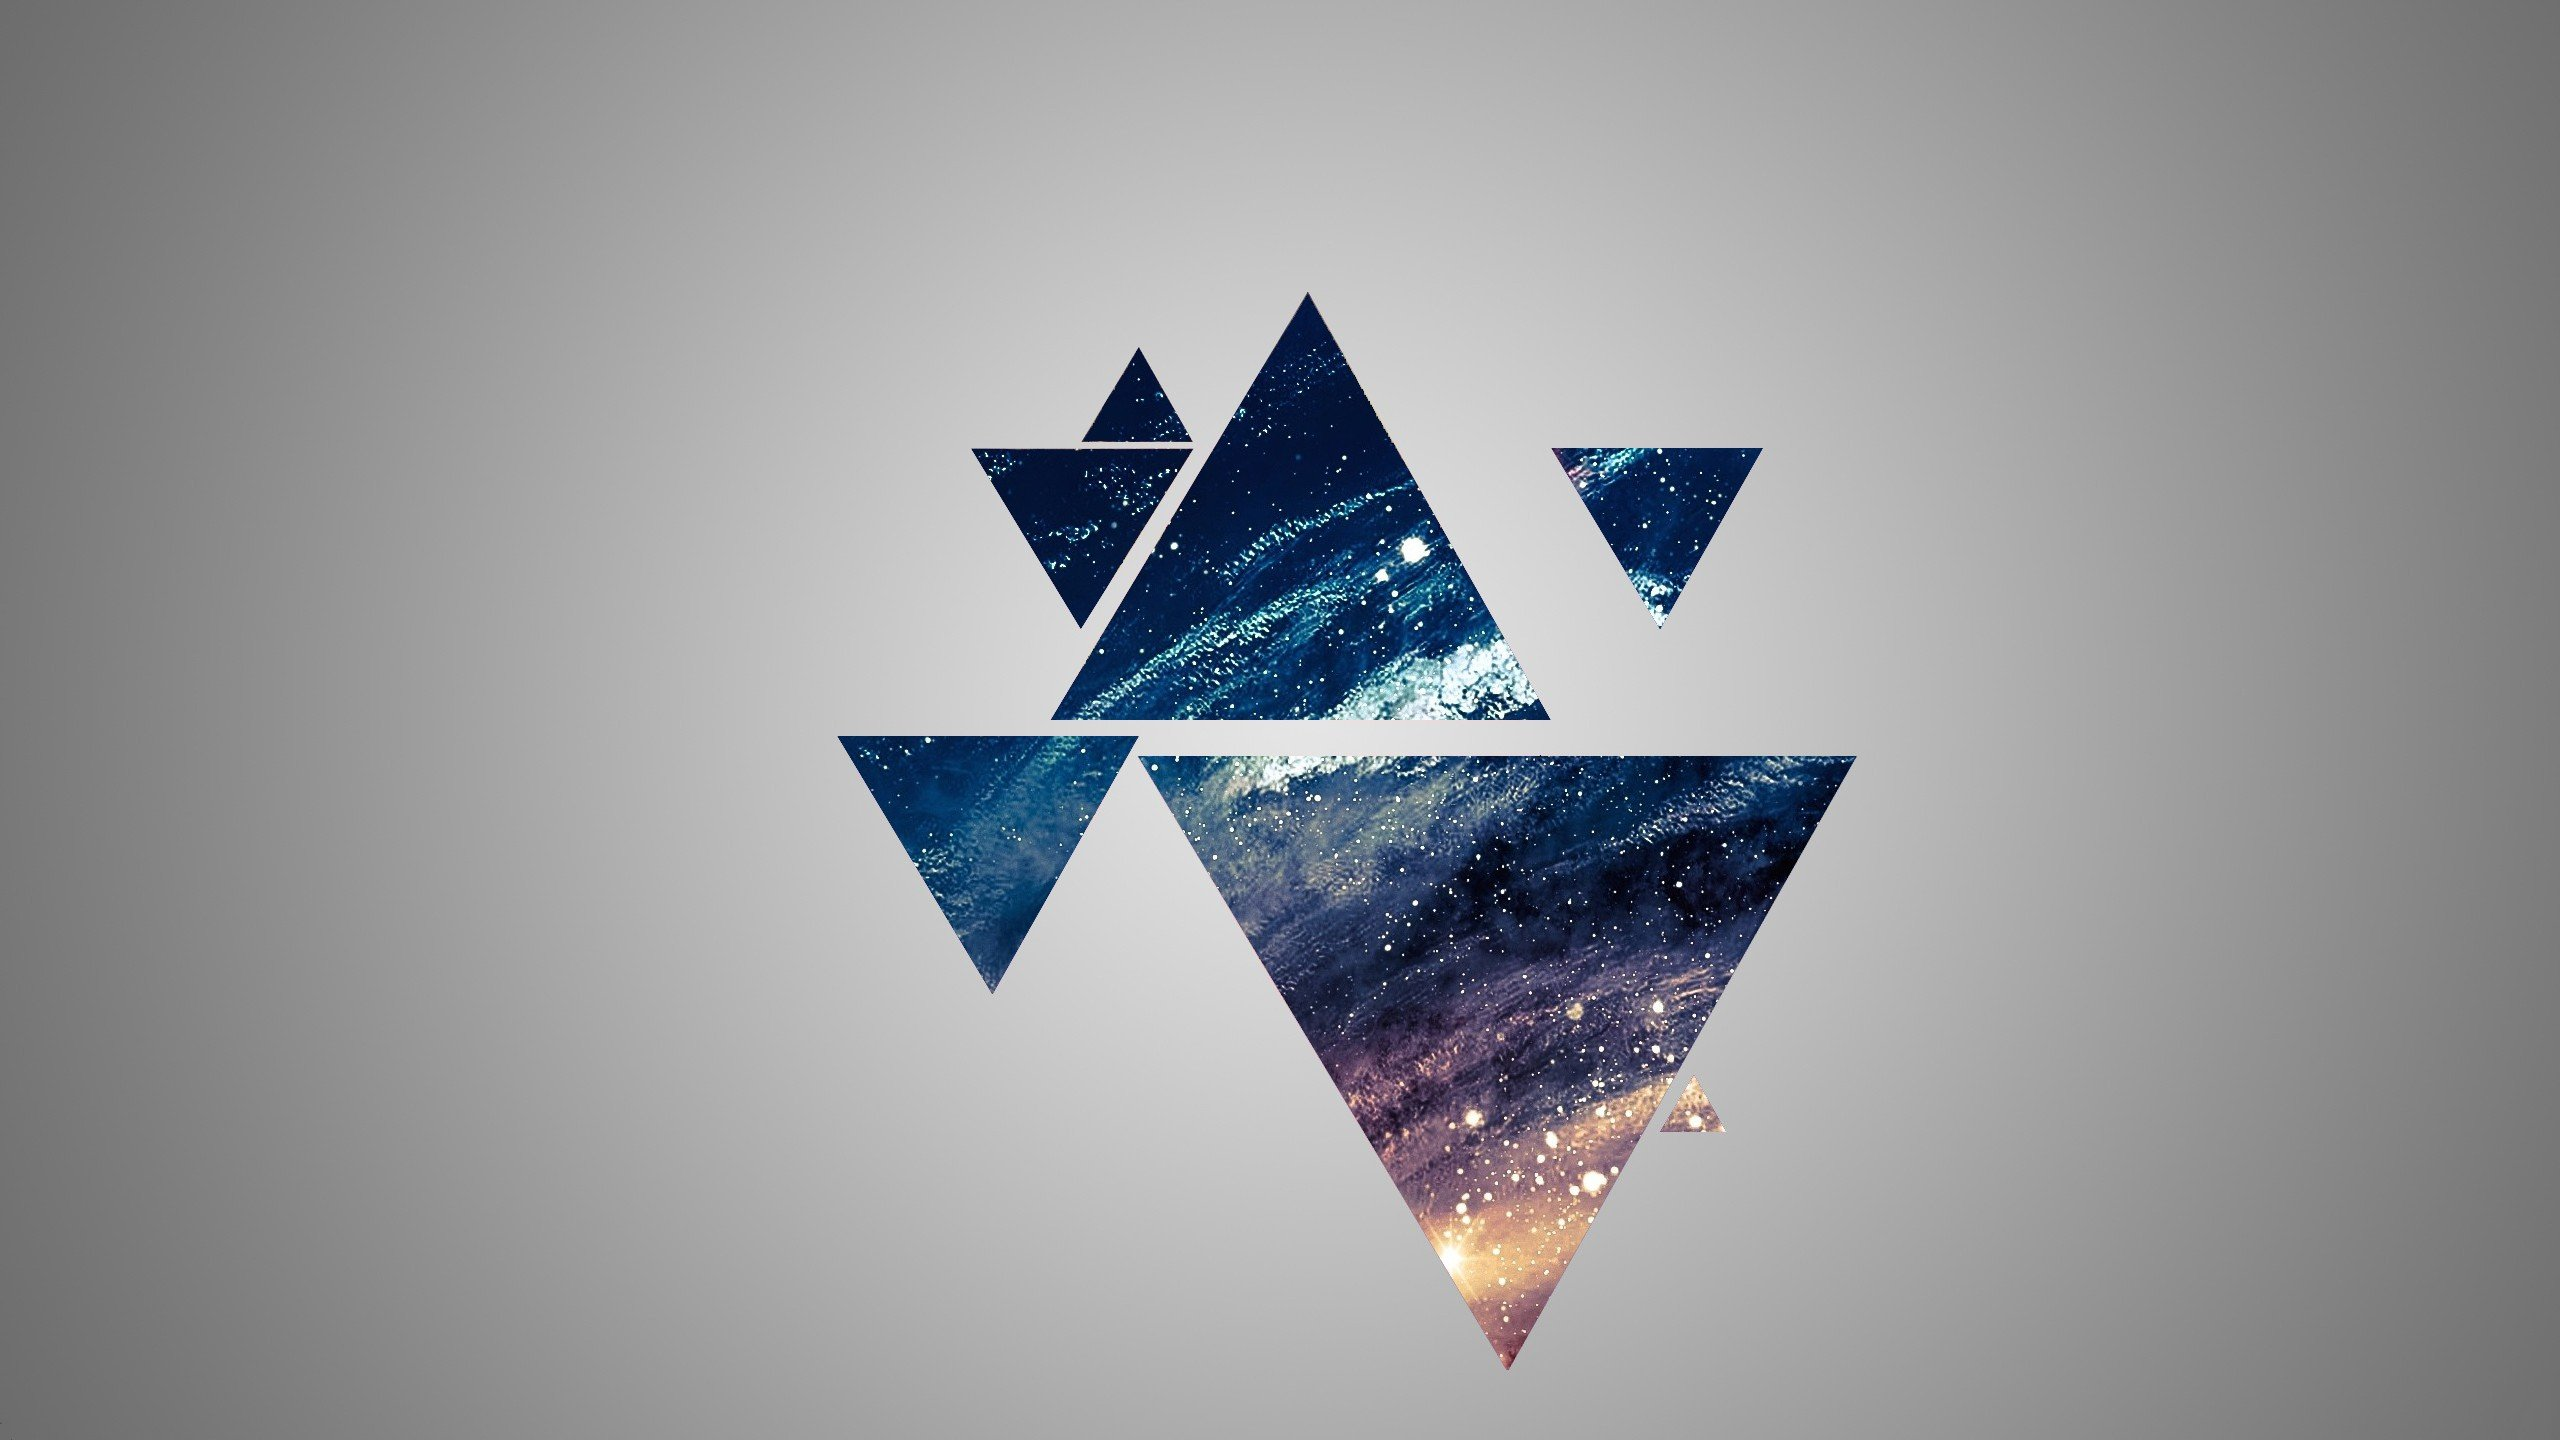 New 3d Wallpaper 1920x1080 Space Blue Yellow Gray Triangle Hd Wallpapers